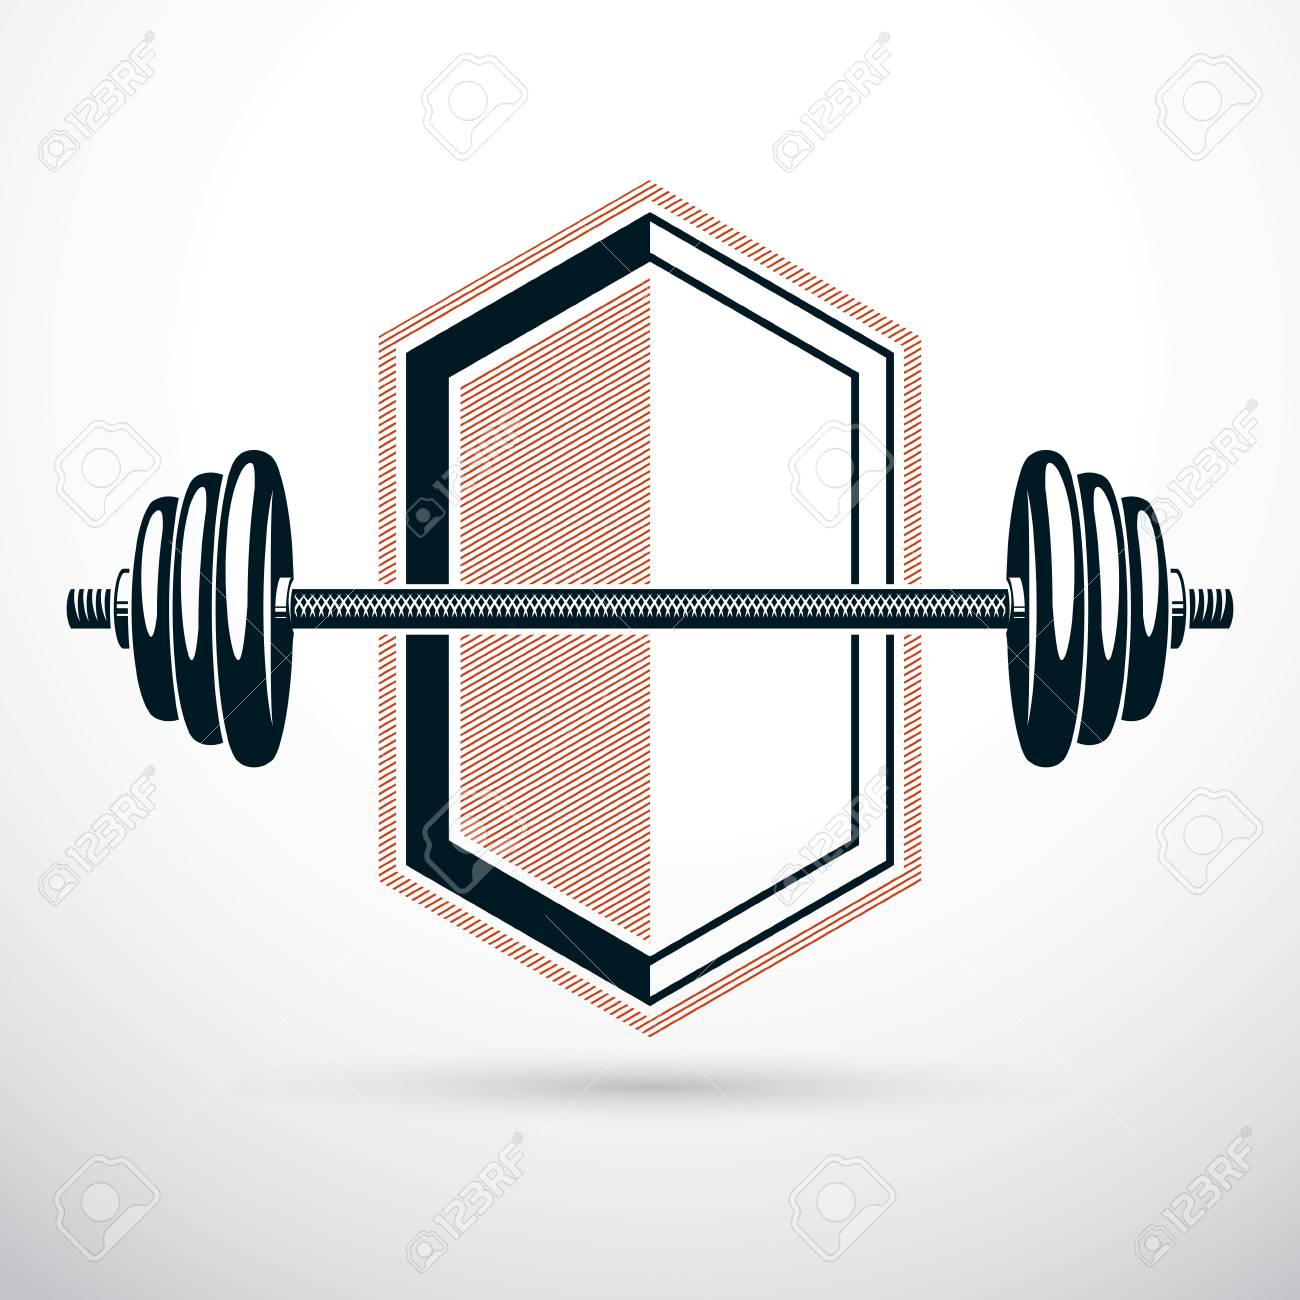 barbell vector illustration isolated